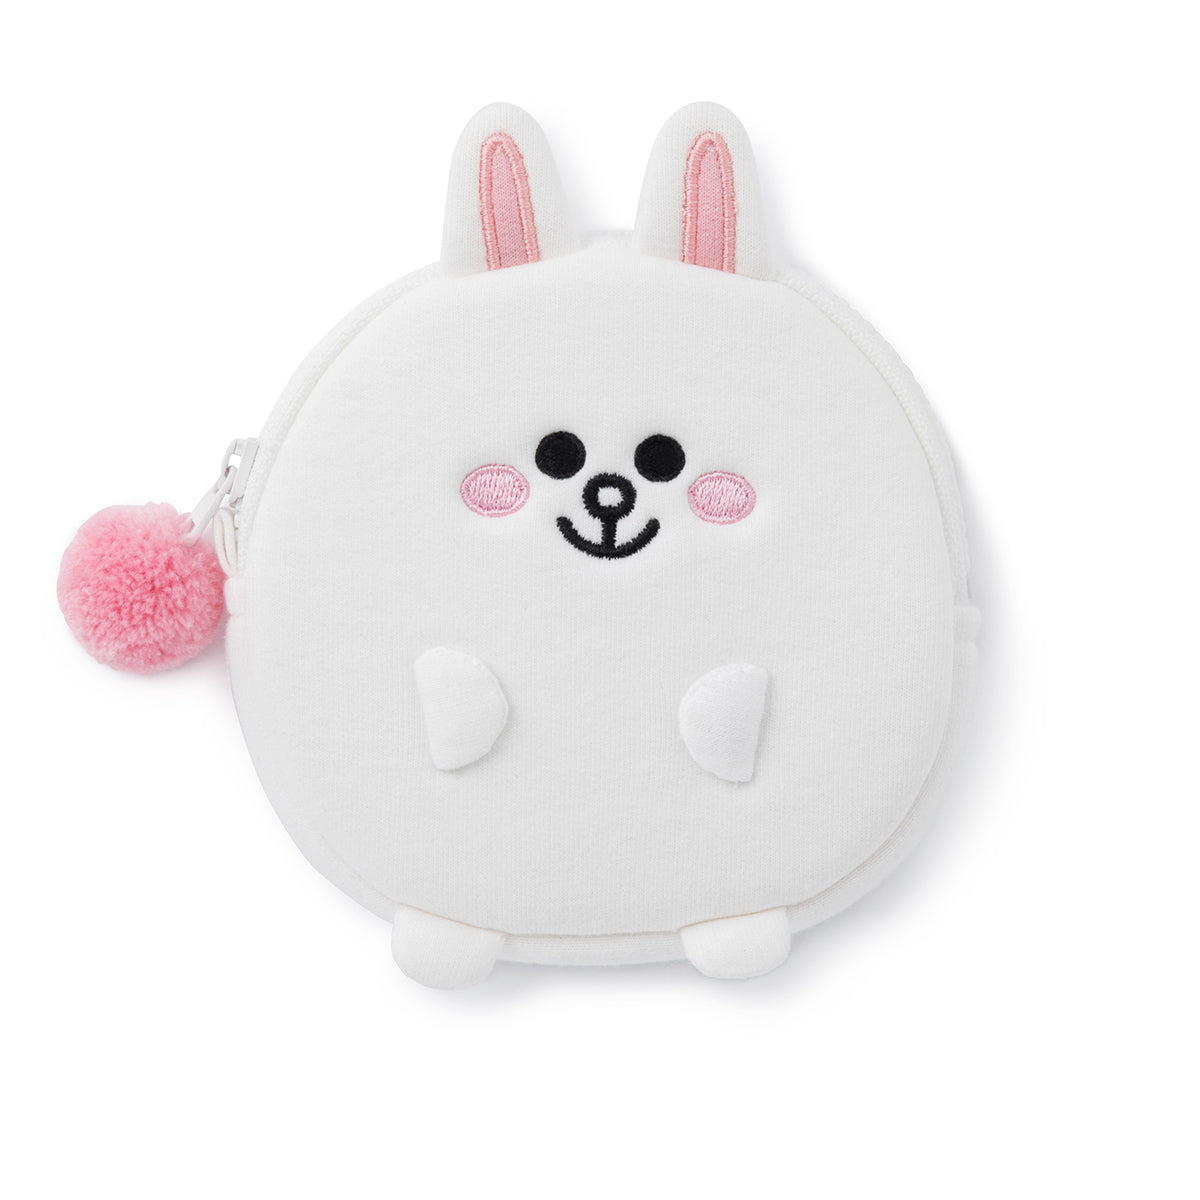 CONY Cotton Coin Purse Bag Charm